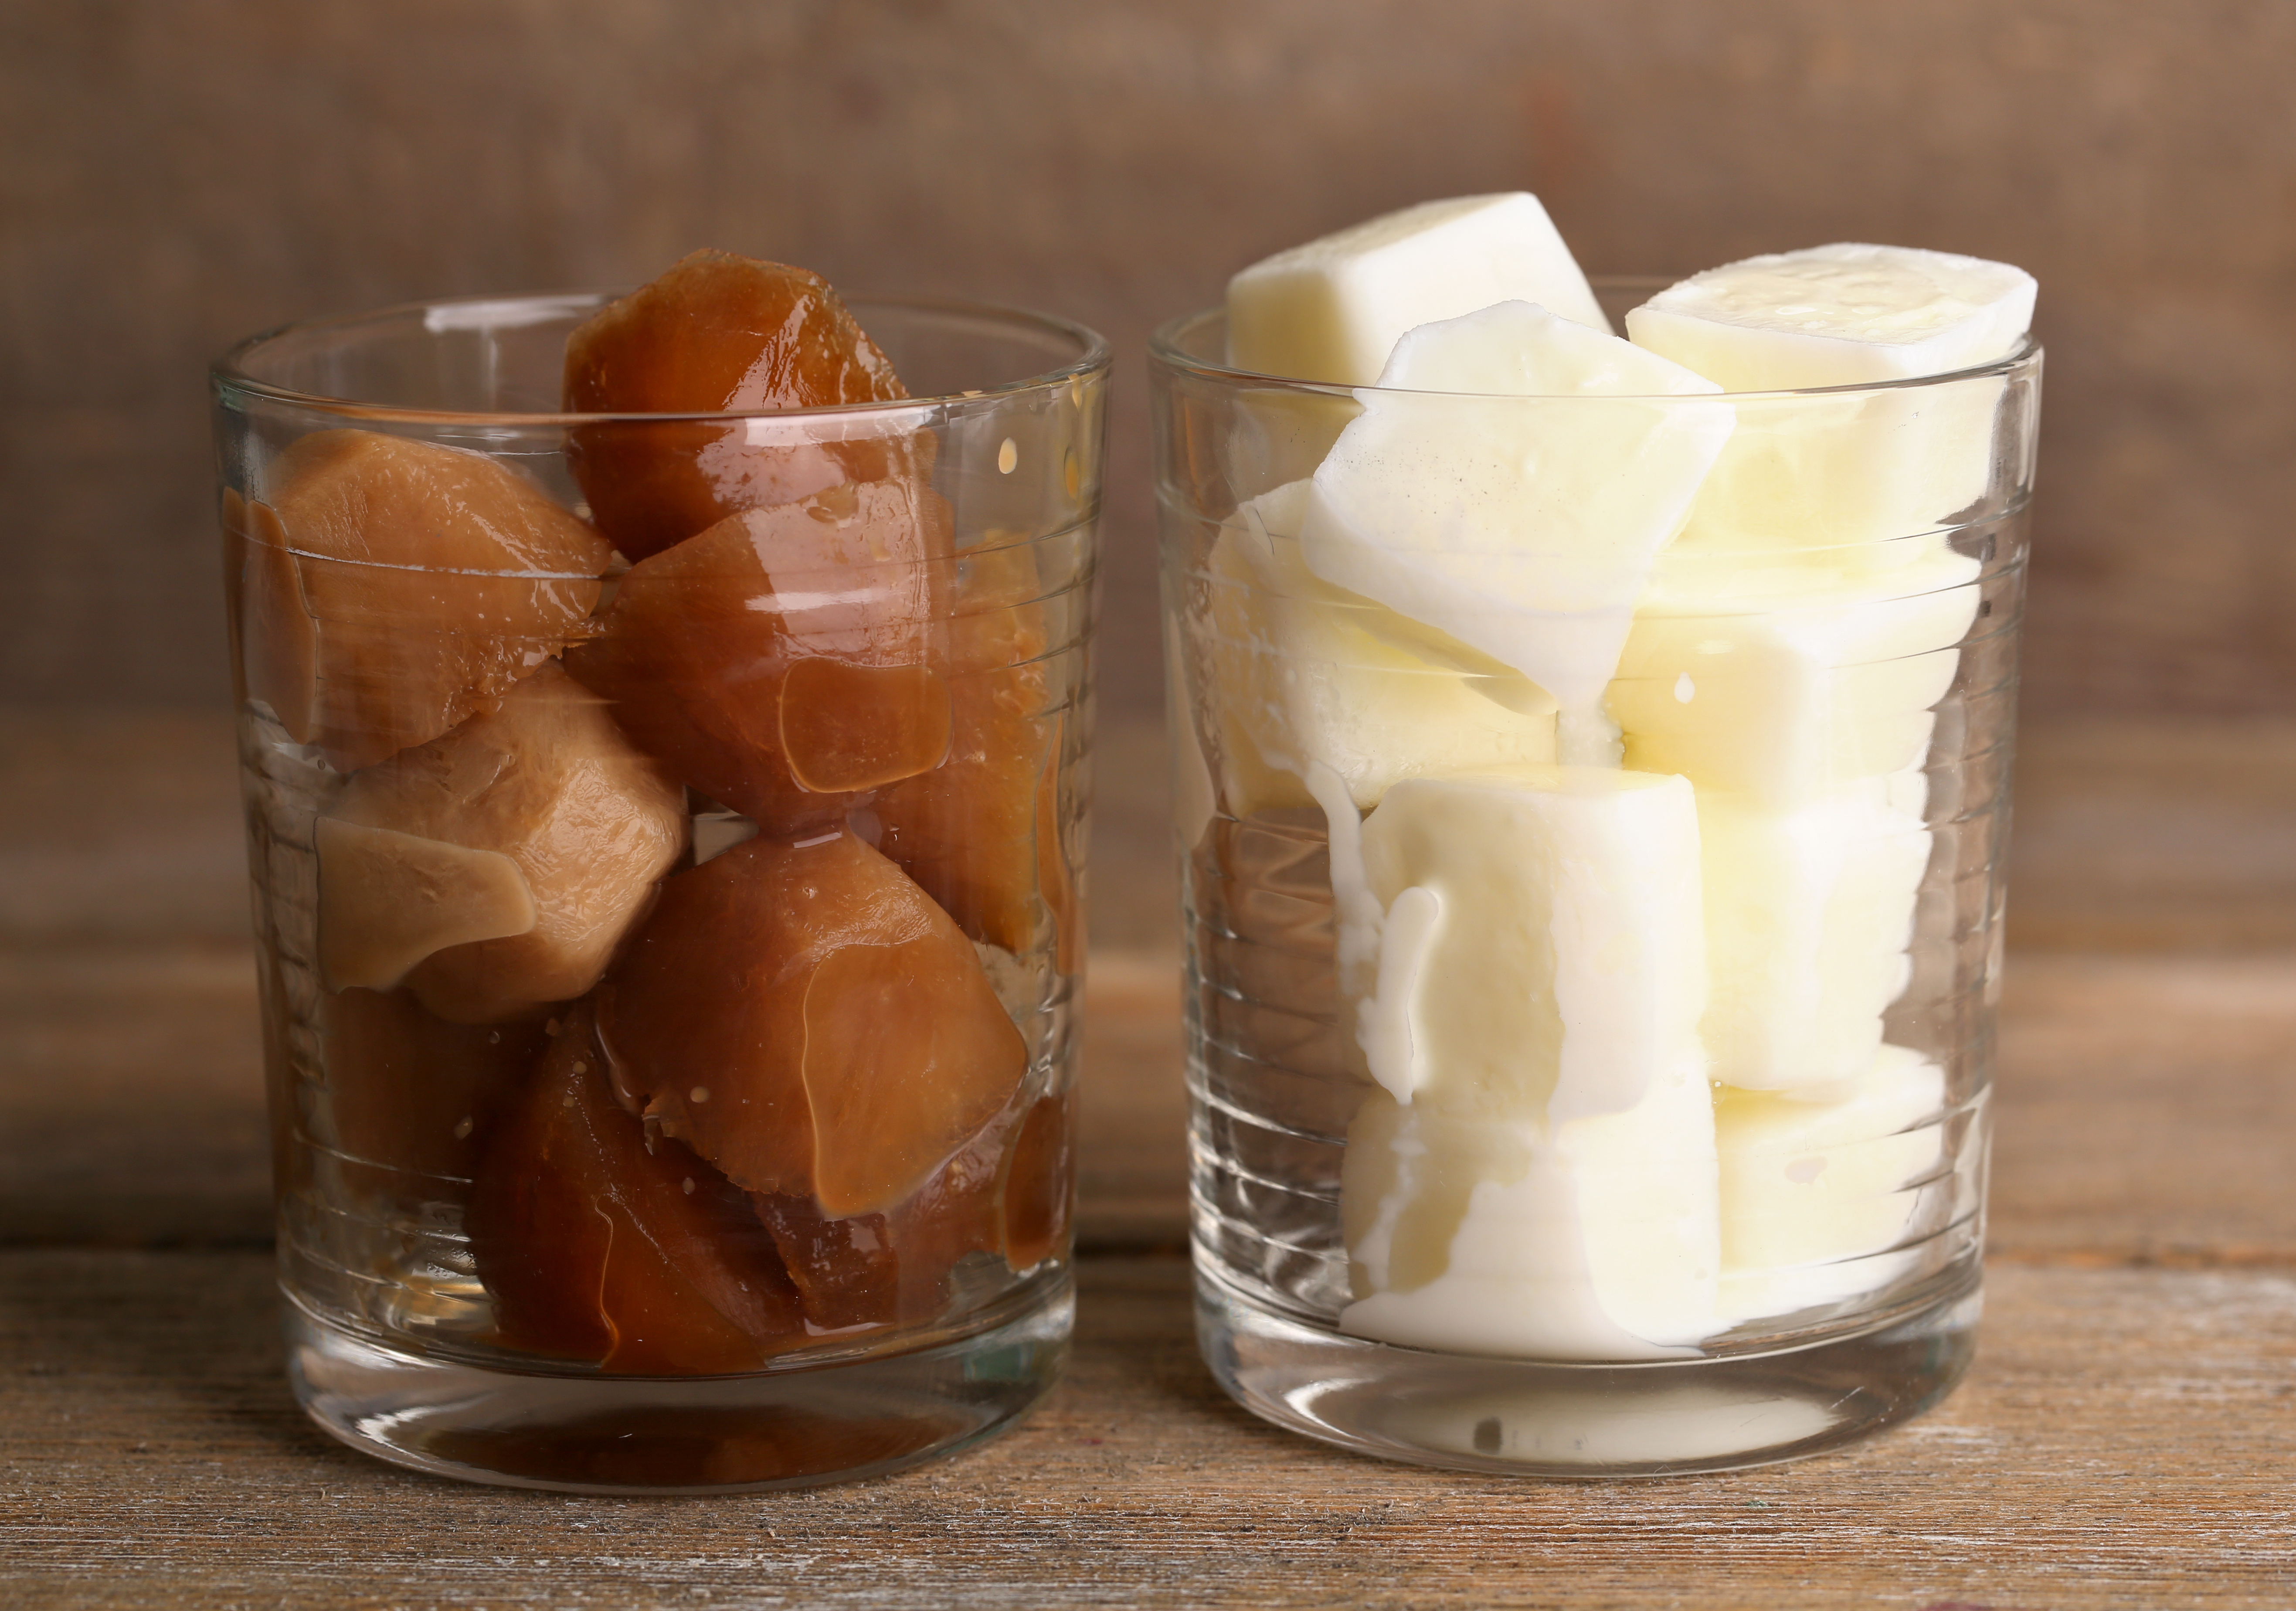 Iced coffee and milky cubes in glass on wooden background